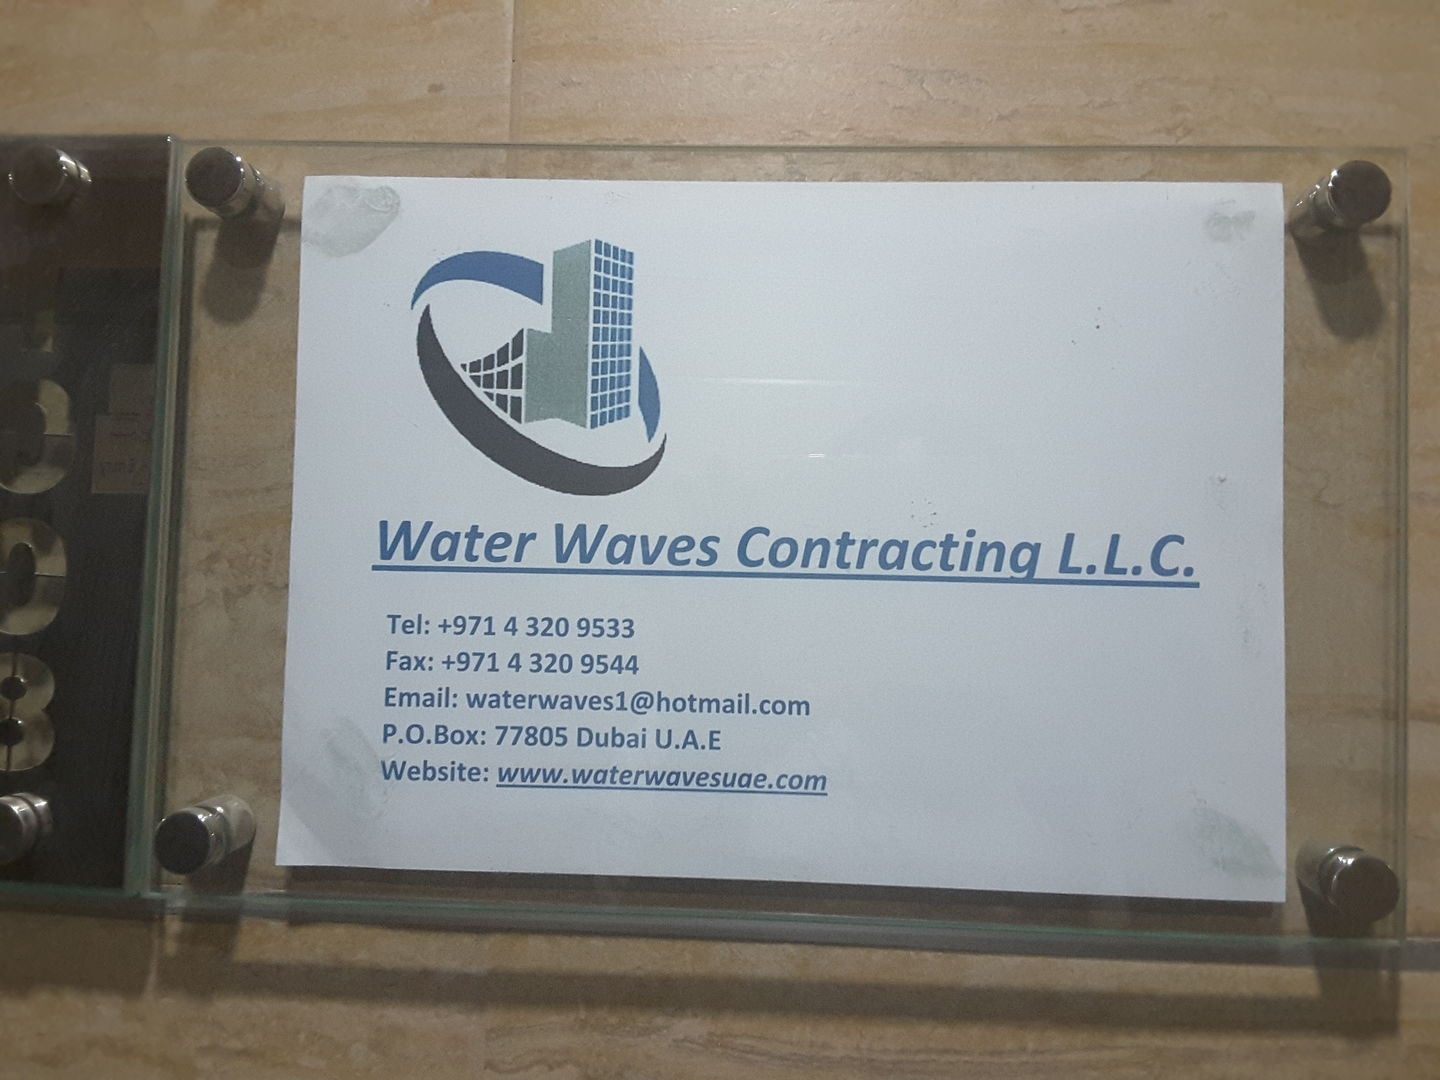 HiDubai-business-water-waves-contracting-construction-heavy-industries-construction-renovation-dubai-silicon-oasis-nadd-hessa-dubai-2